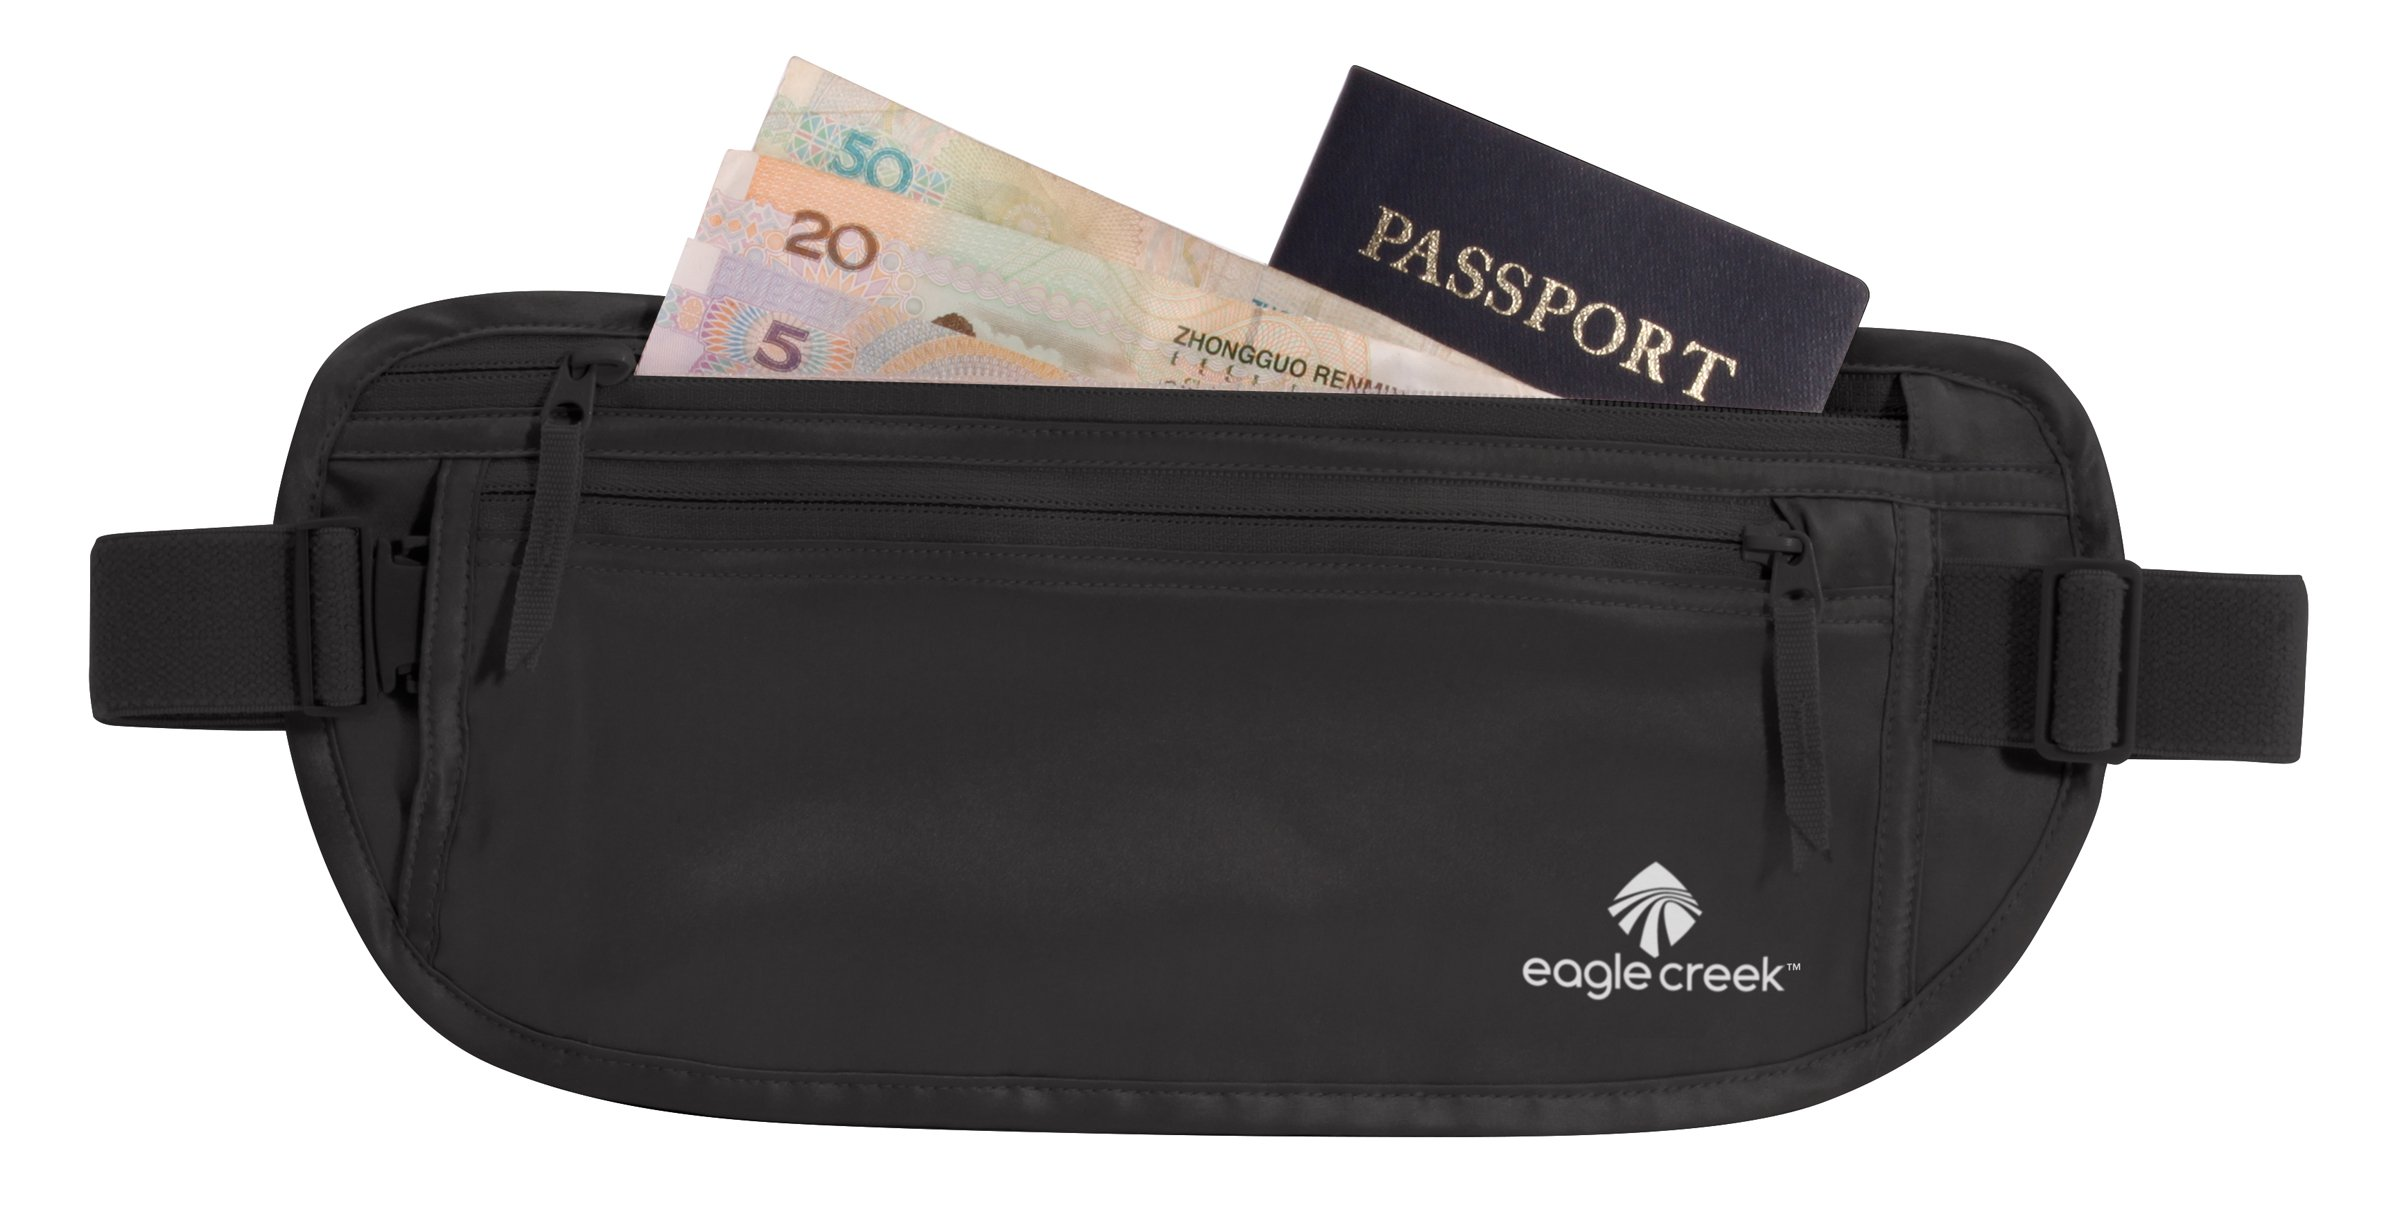 Eagle Creek Silk Undercover Money Belt, Black